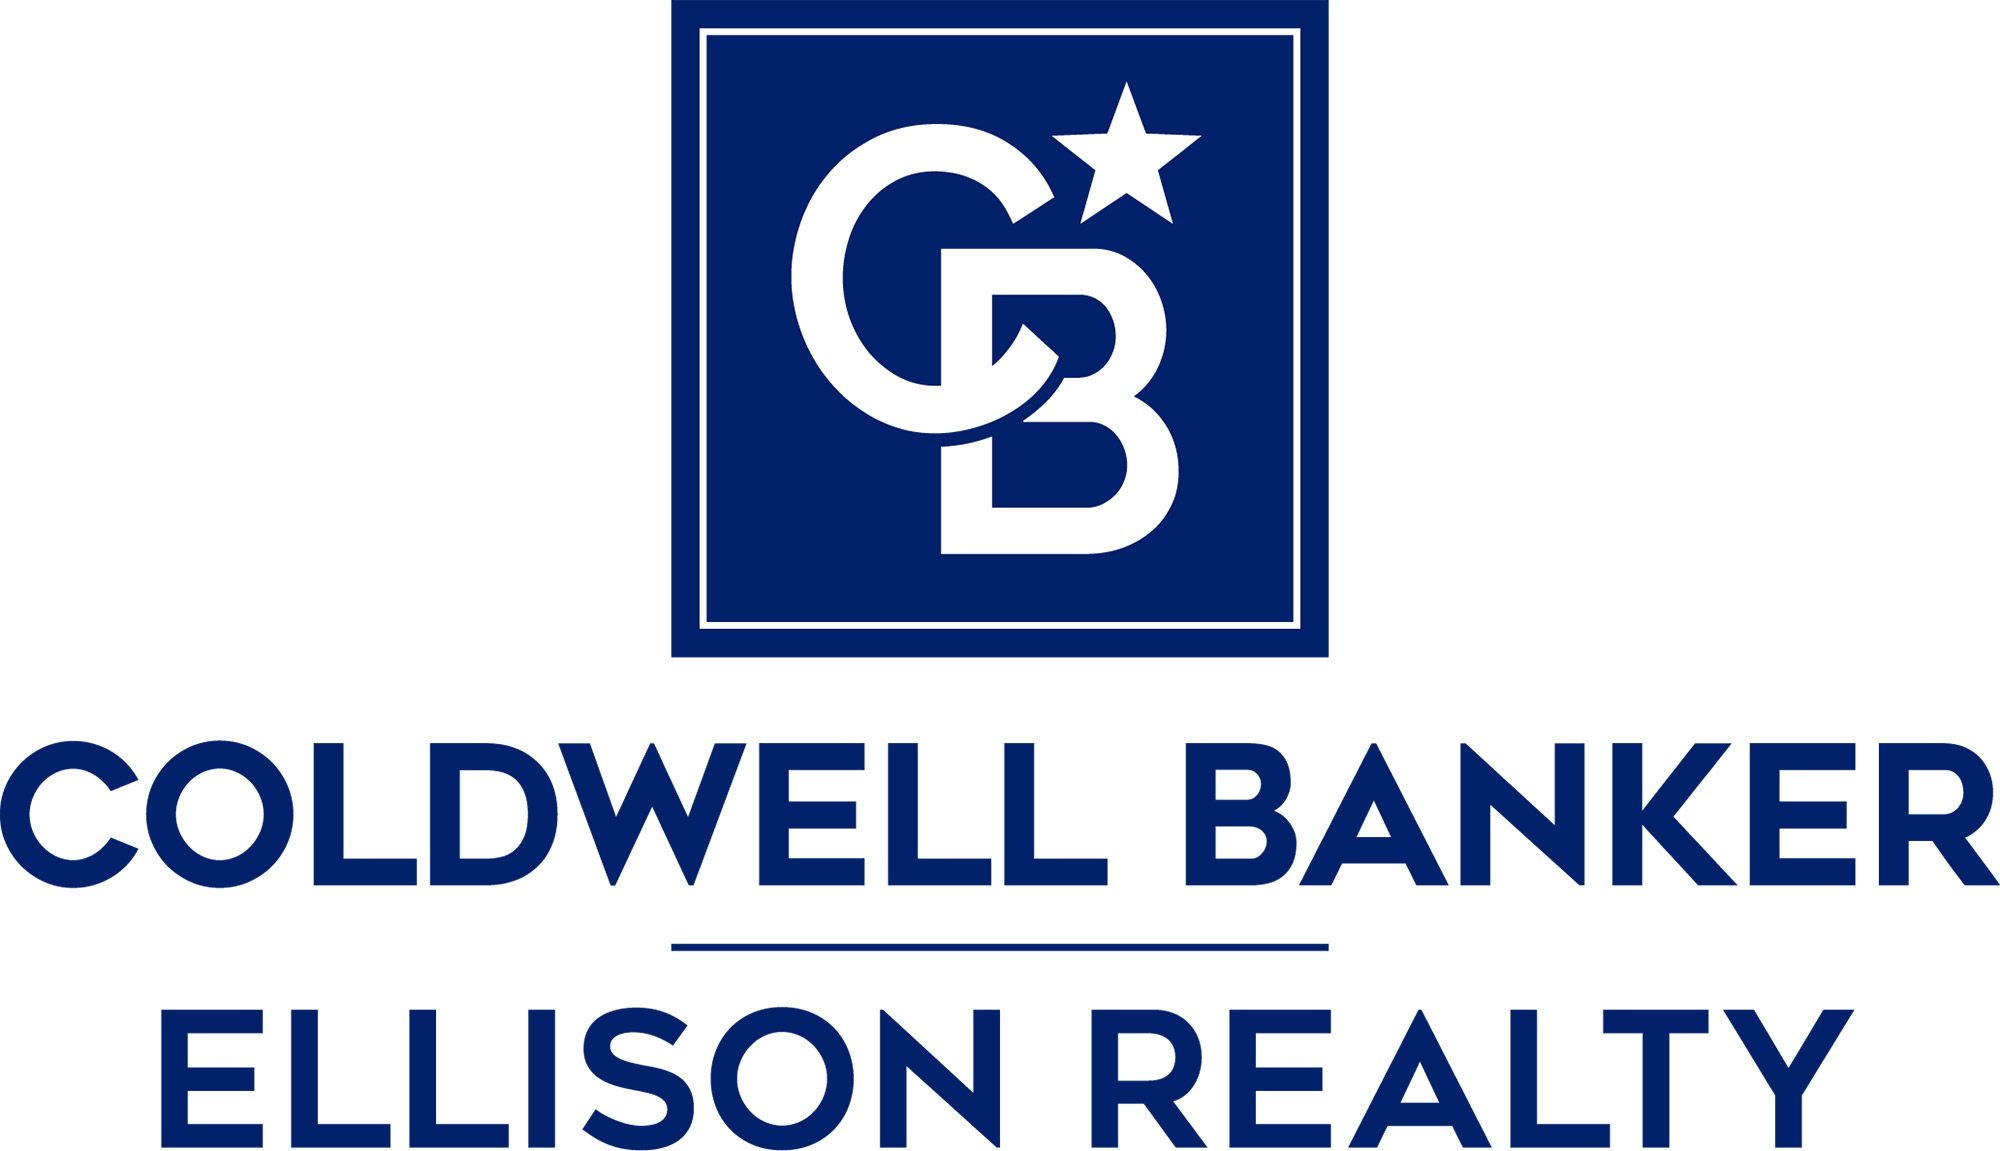 Virginia Rhodes - Coldwell Banker Ellison Realty Logo